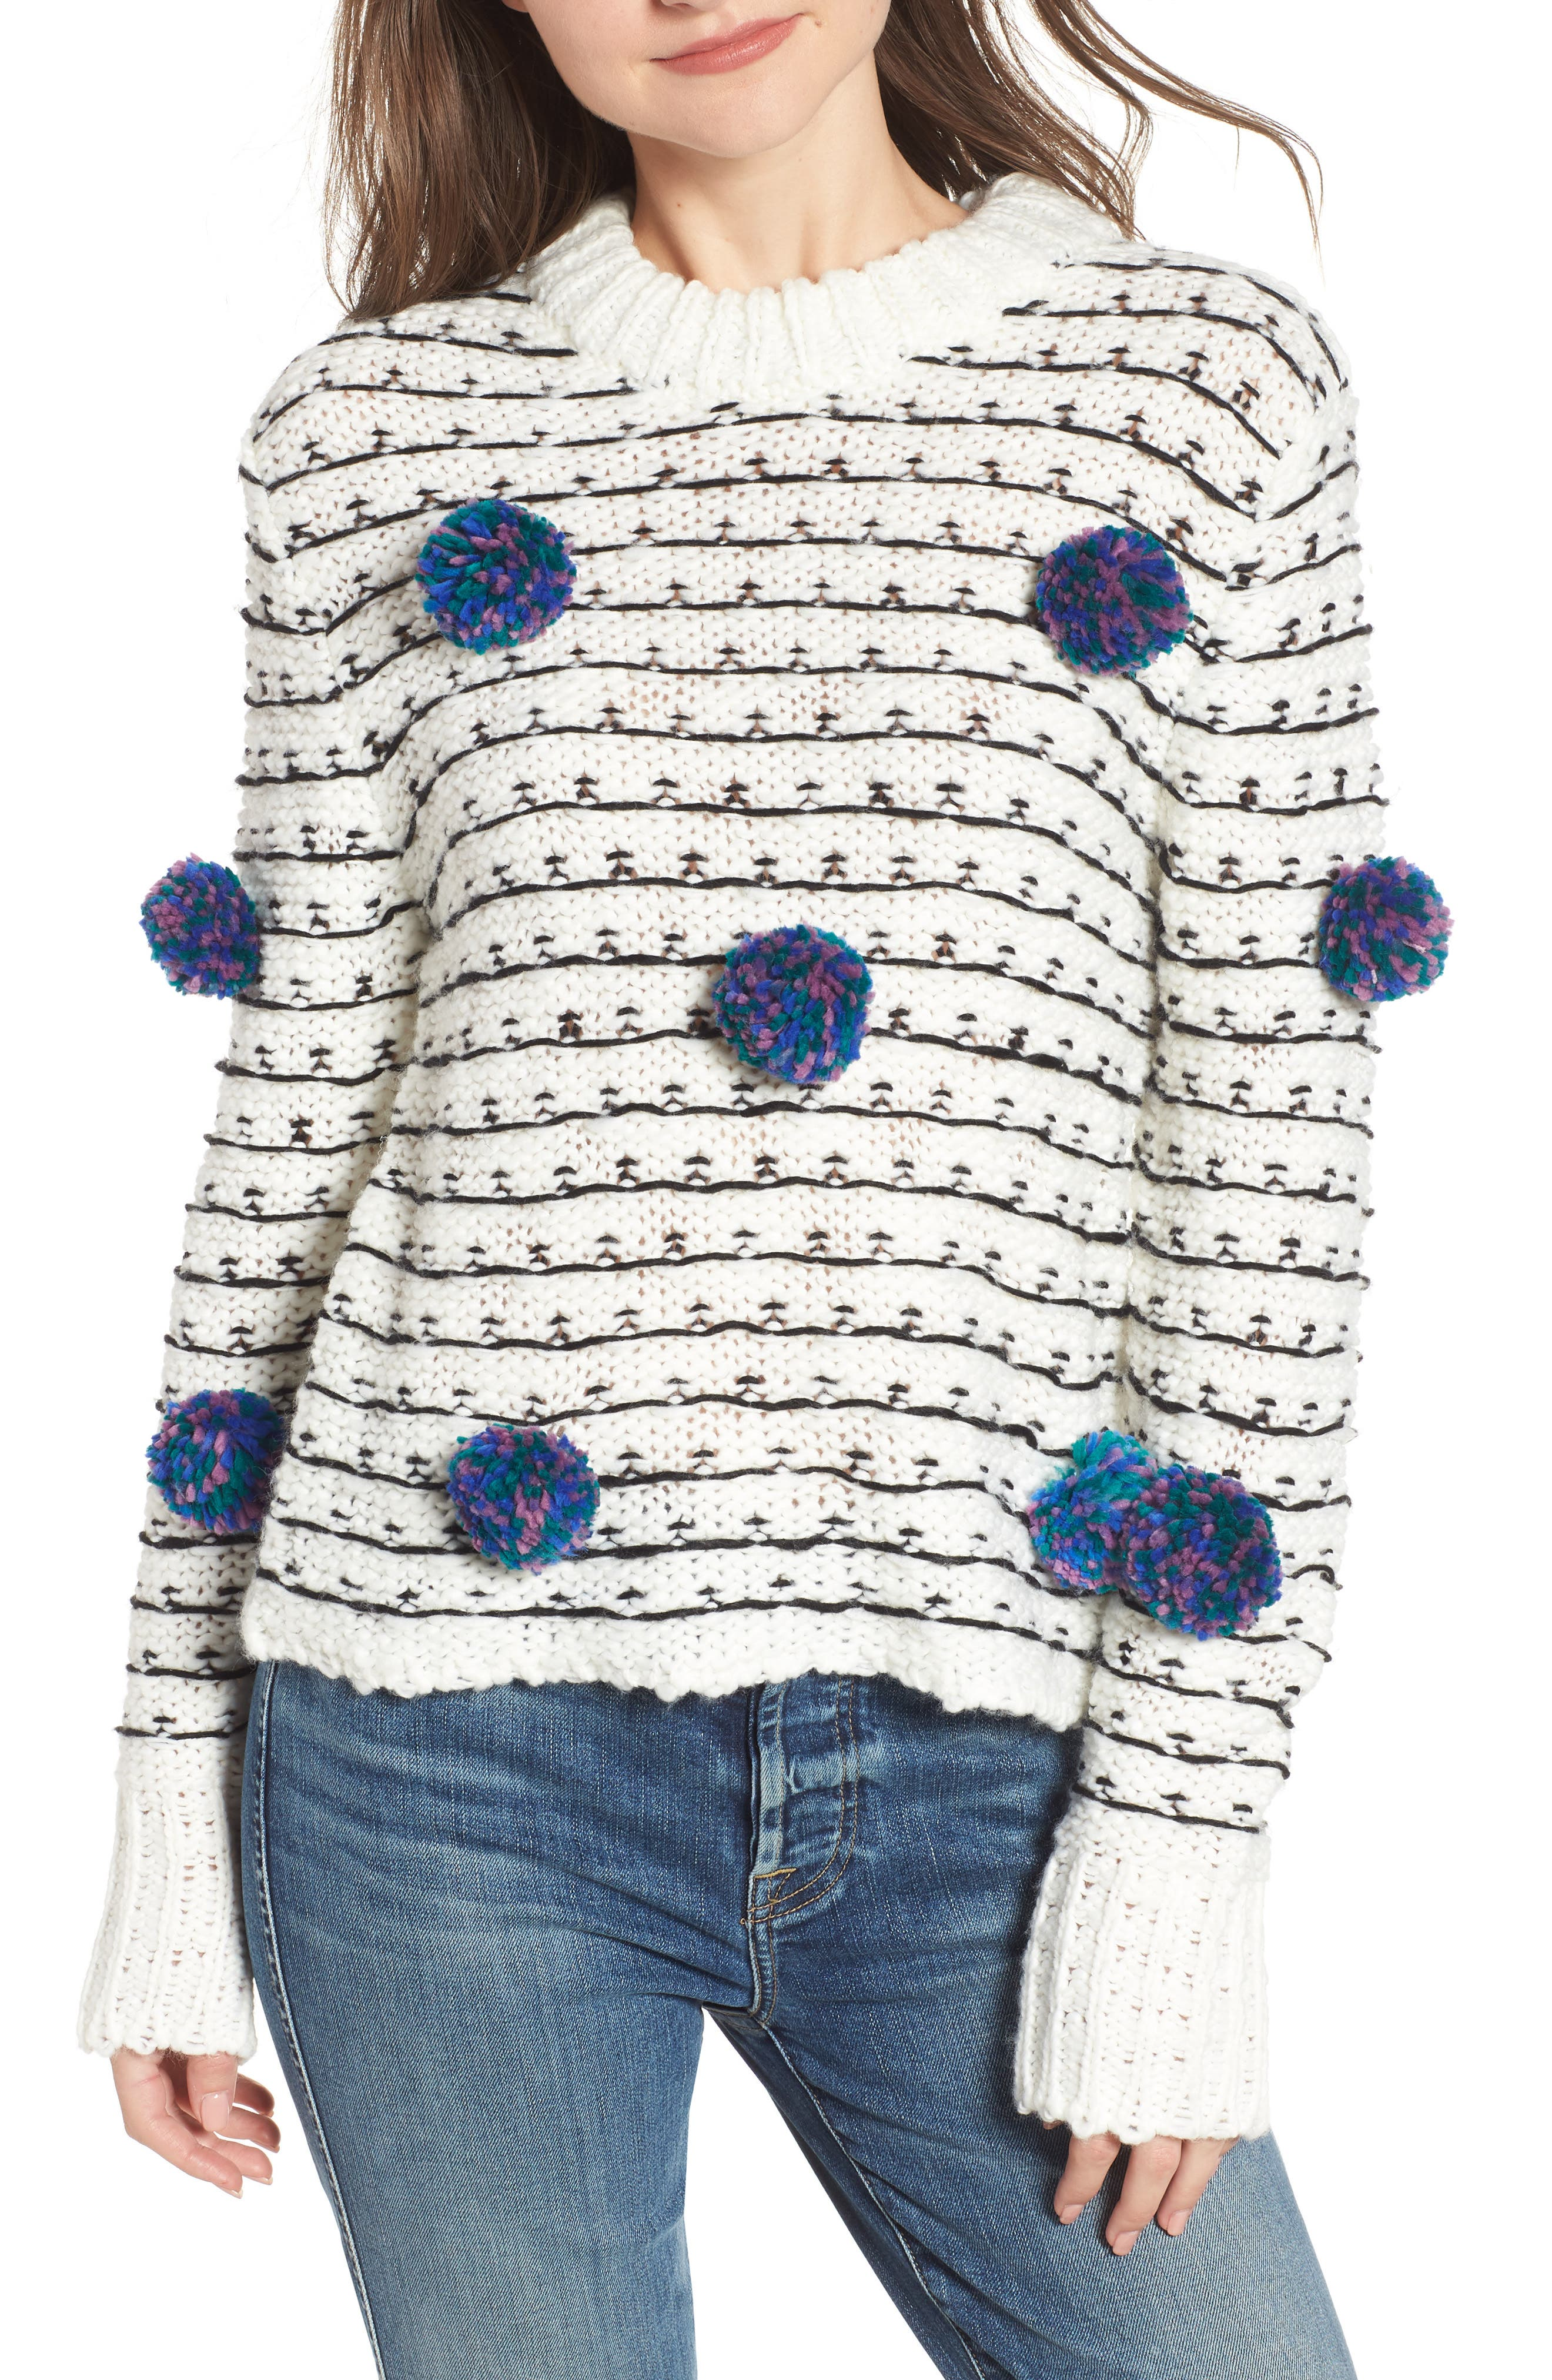 Pompom Chunky Sweater in White